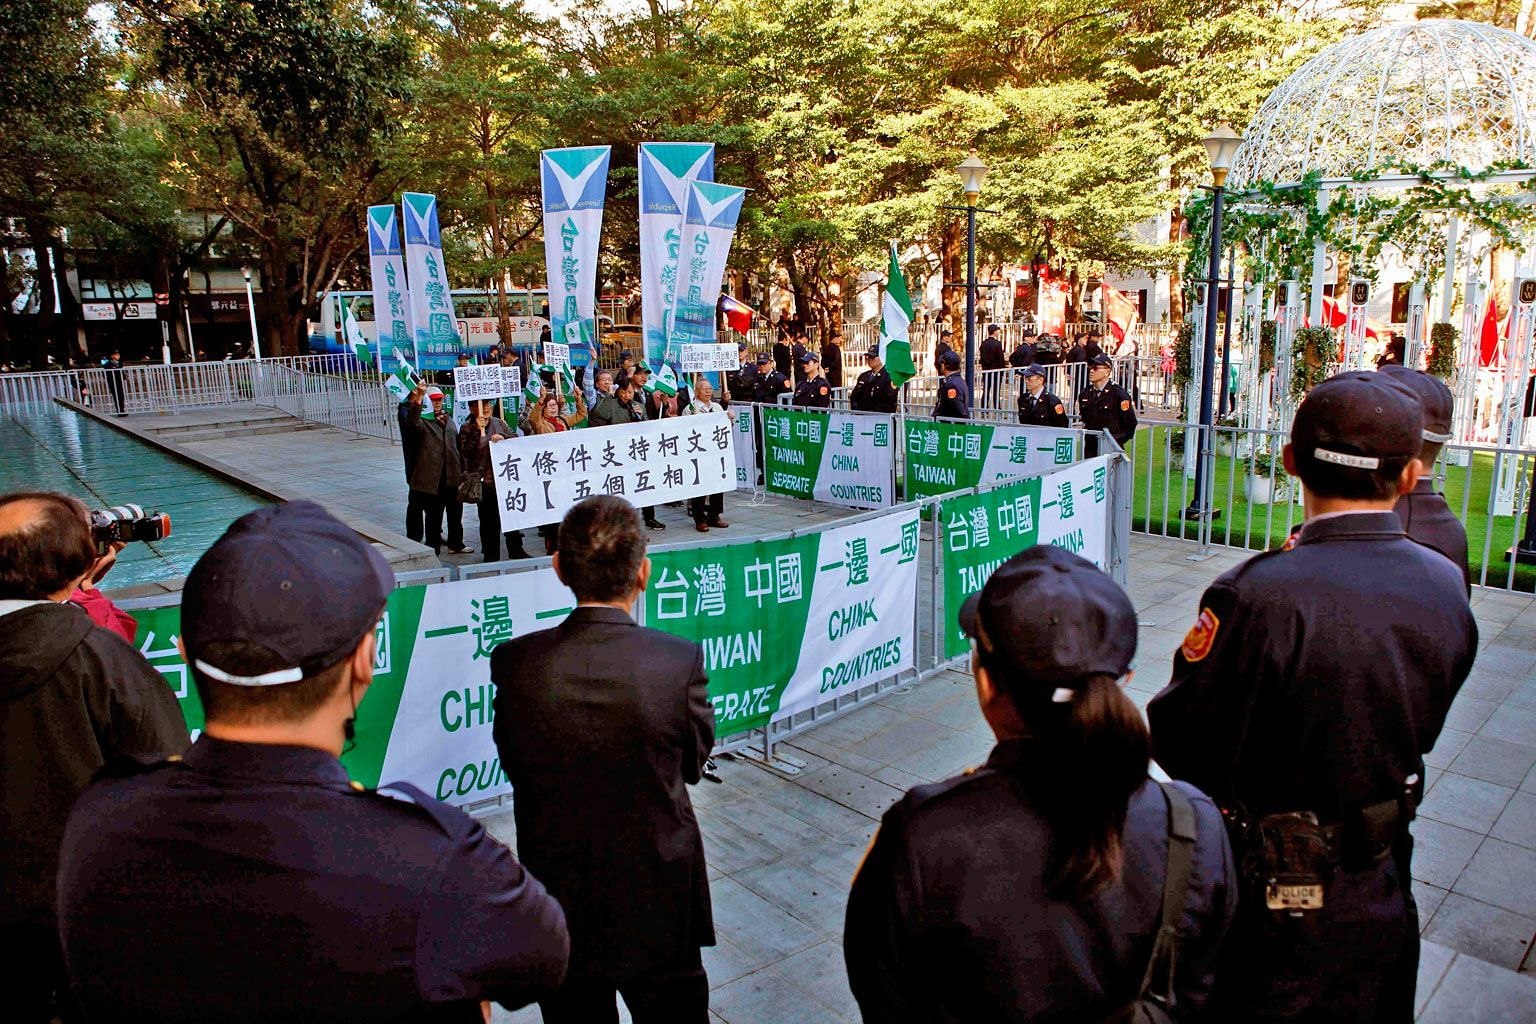 Pro-independence protesters outside the Taipei-Shanghai Twin-City Forum in Taipei last month. Over the past decade, with mainland Chinese tourists travelling in droves to Taiwan and more Taiwanese moving to China to work and study, Taiwanese views on